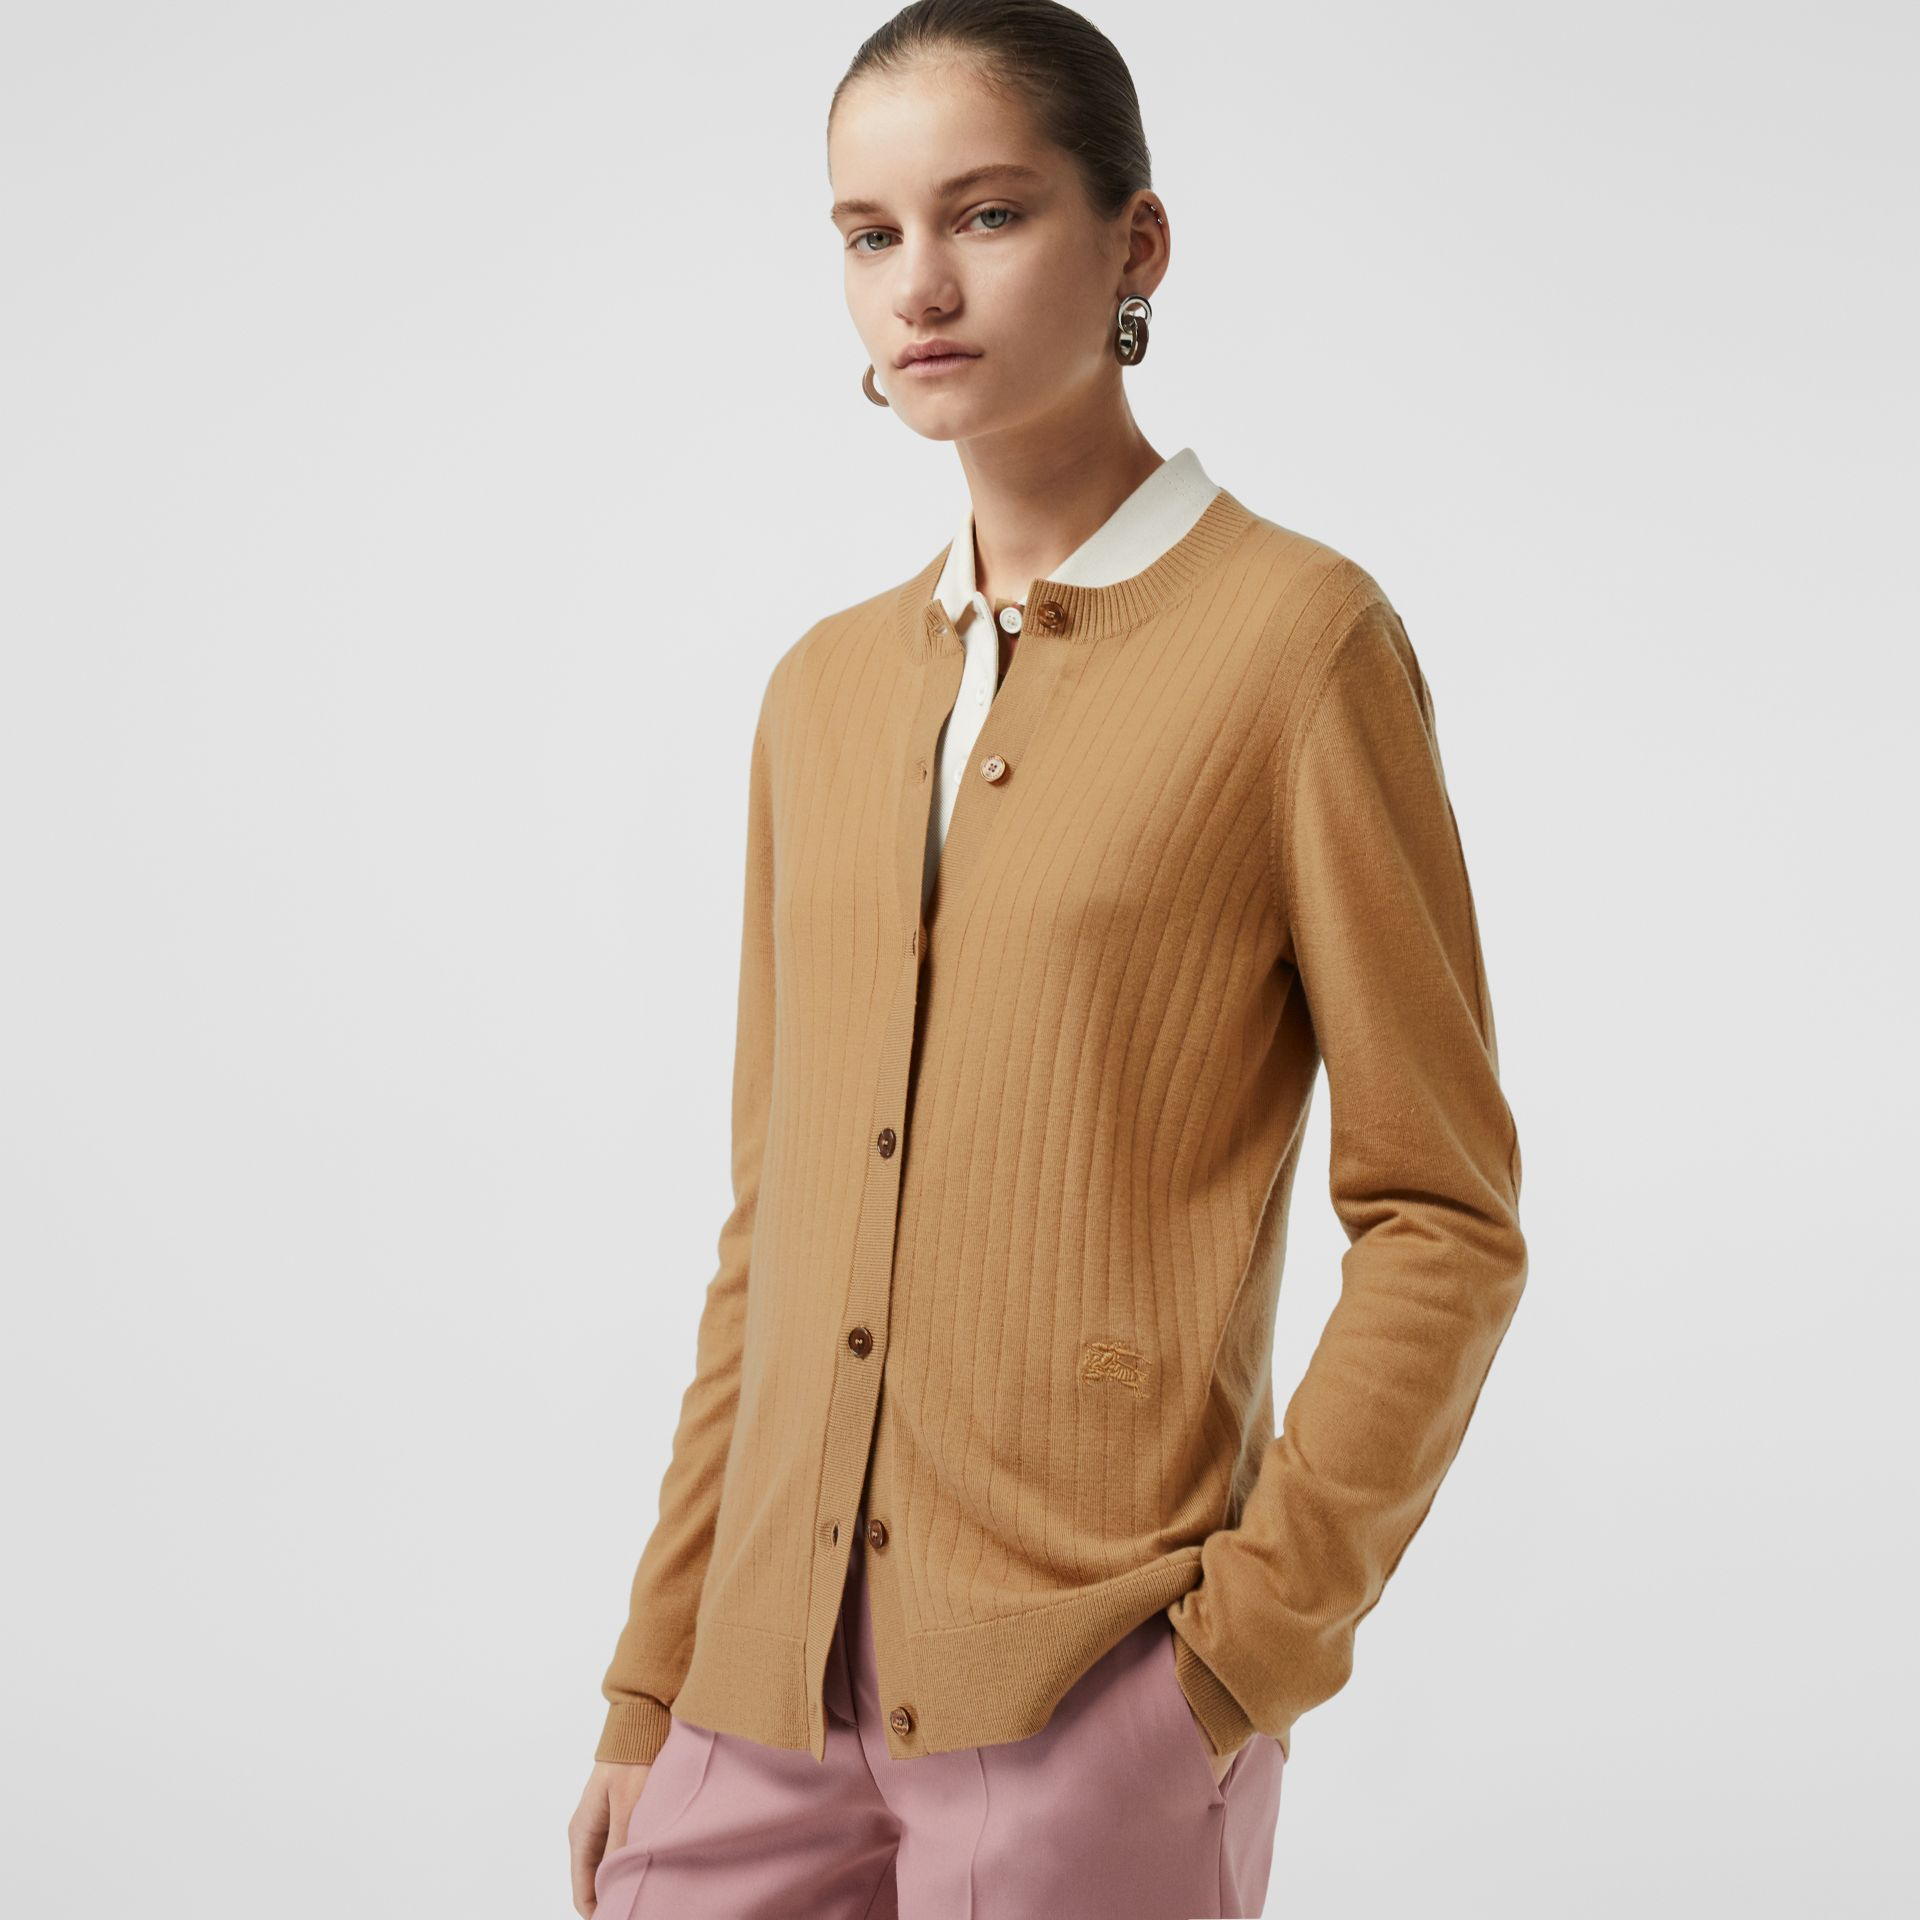 Rib Knit Cashmere Cardigan in Camel - Women | Burberry - gallery image 3